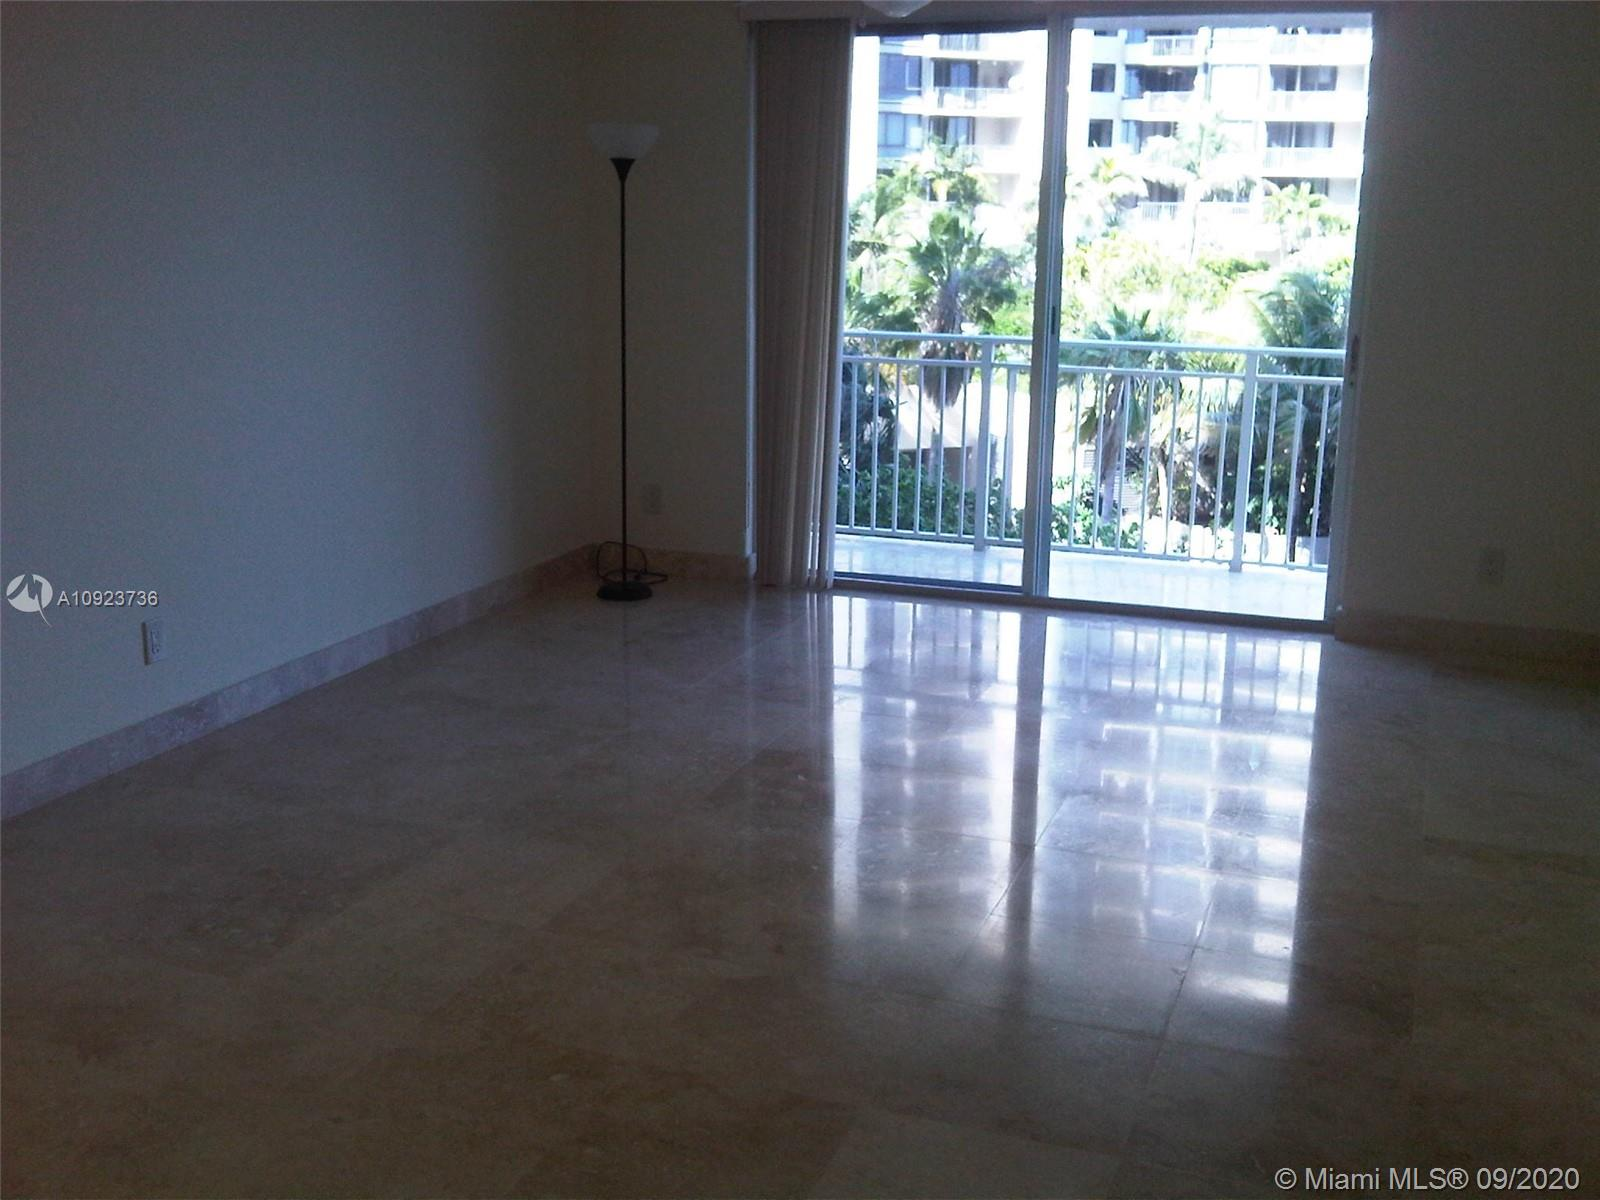 Isola #505 - 770 Claughton Island Dr #505, Miami, FL 33131